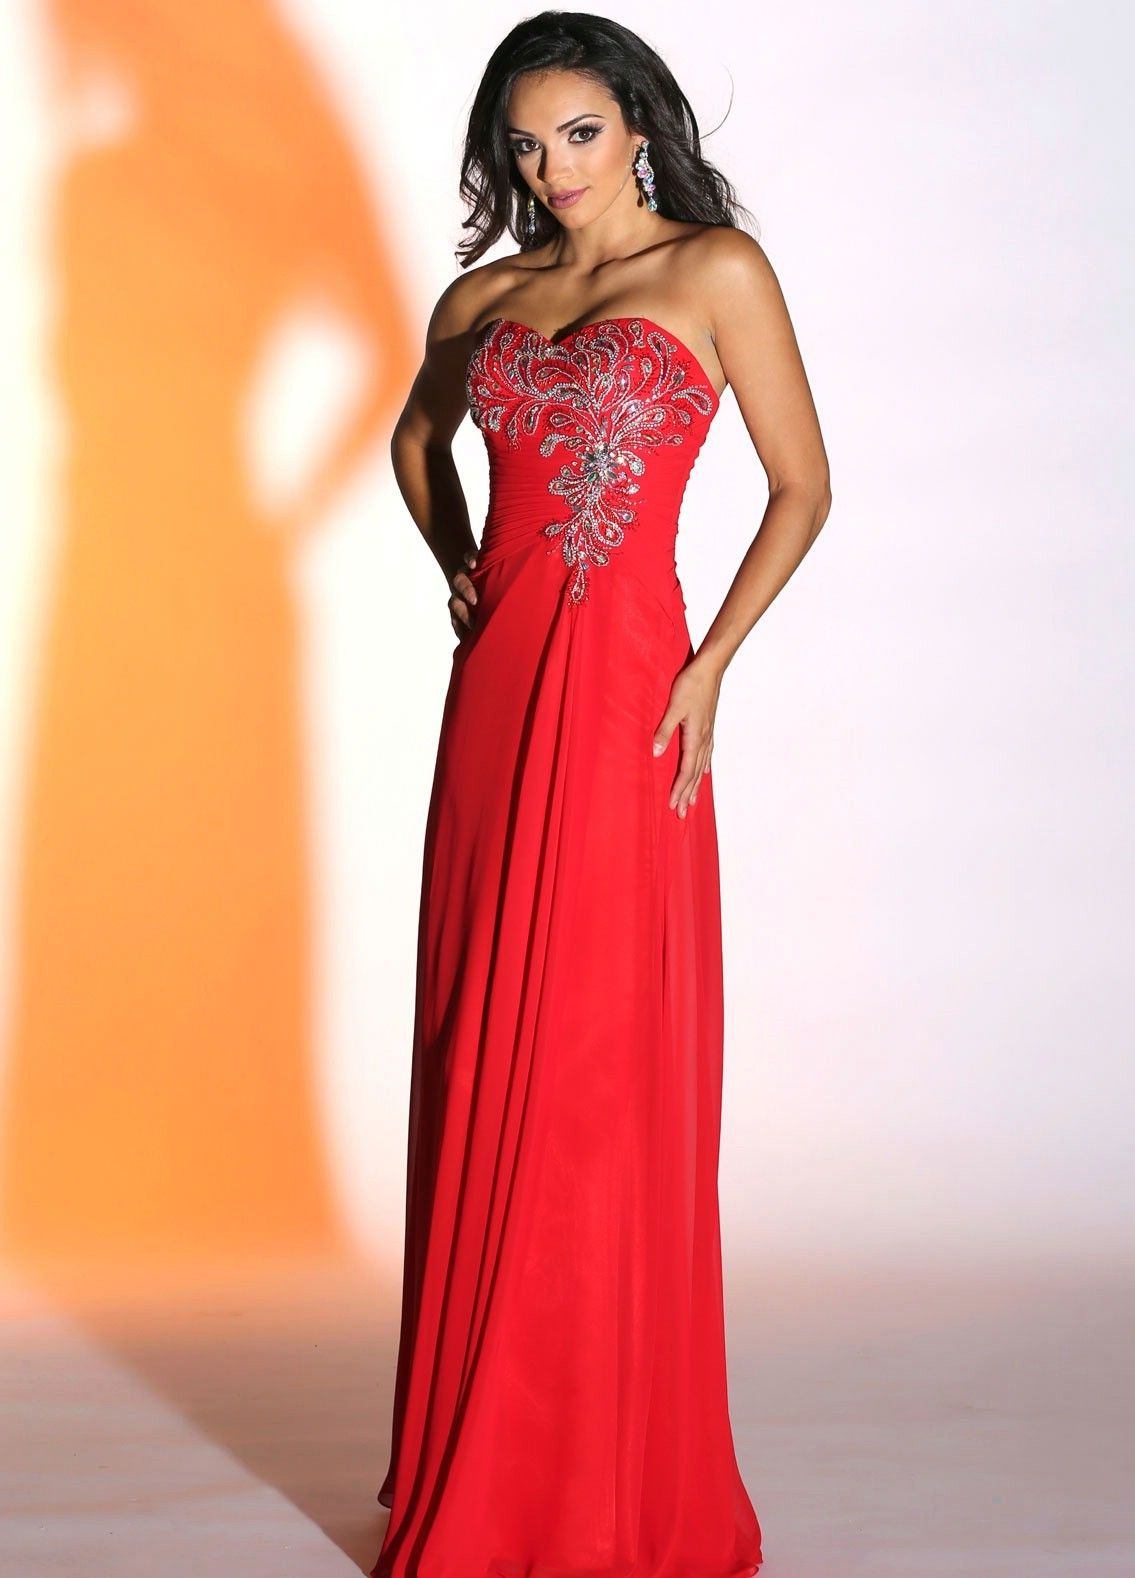 Long red sweetheart neckline strapless prom dress with bling detail